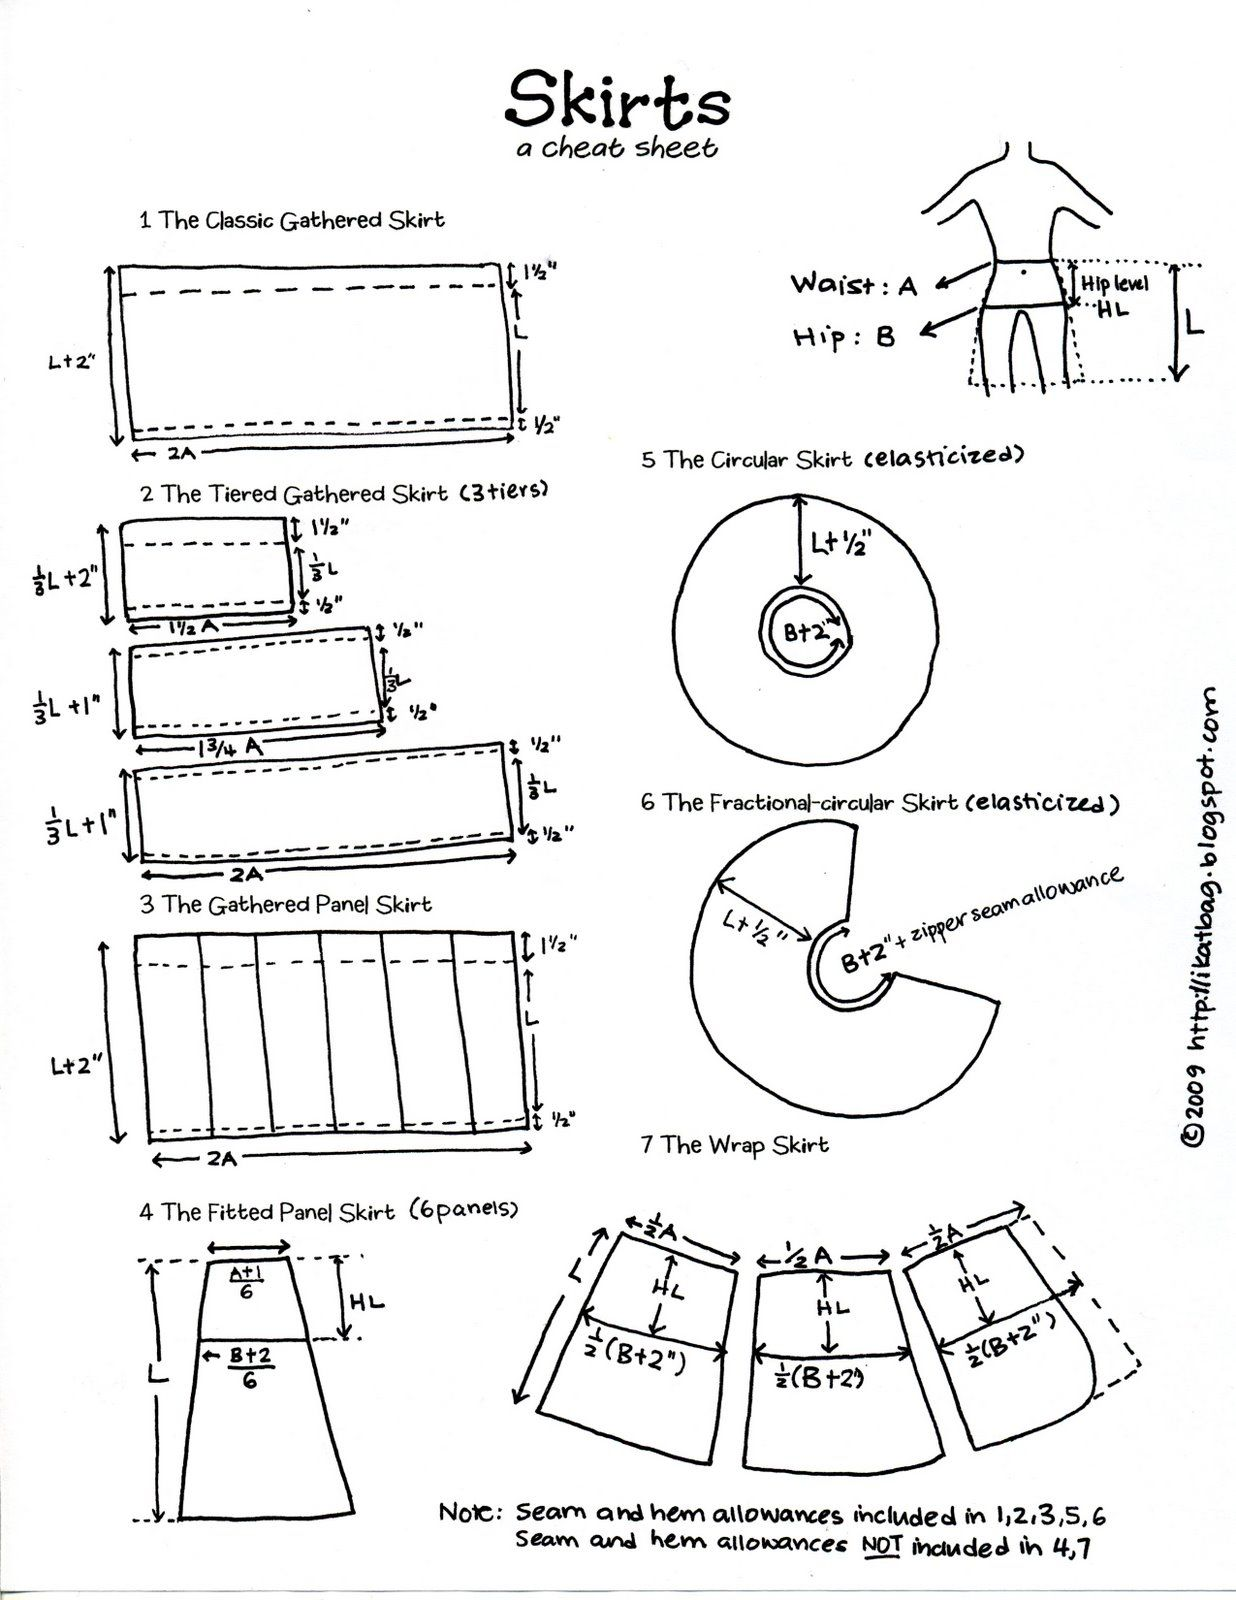 Cheat Sheet For Sewing Skirts I Need This So Bad I Never Do My